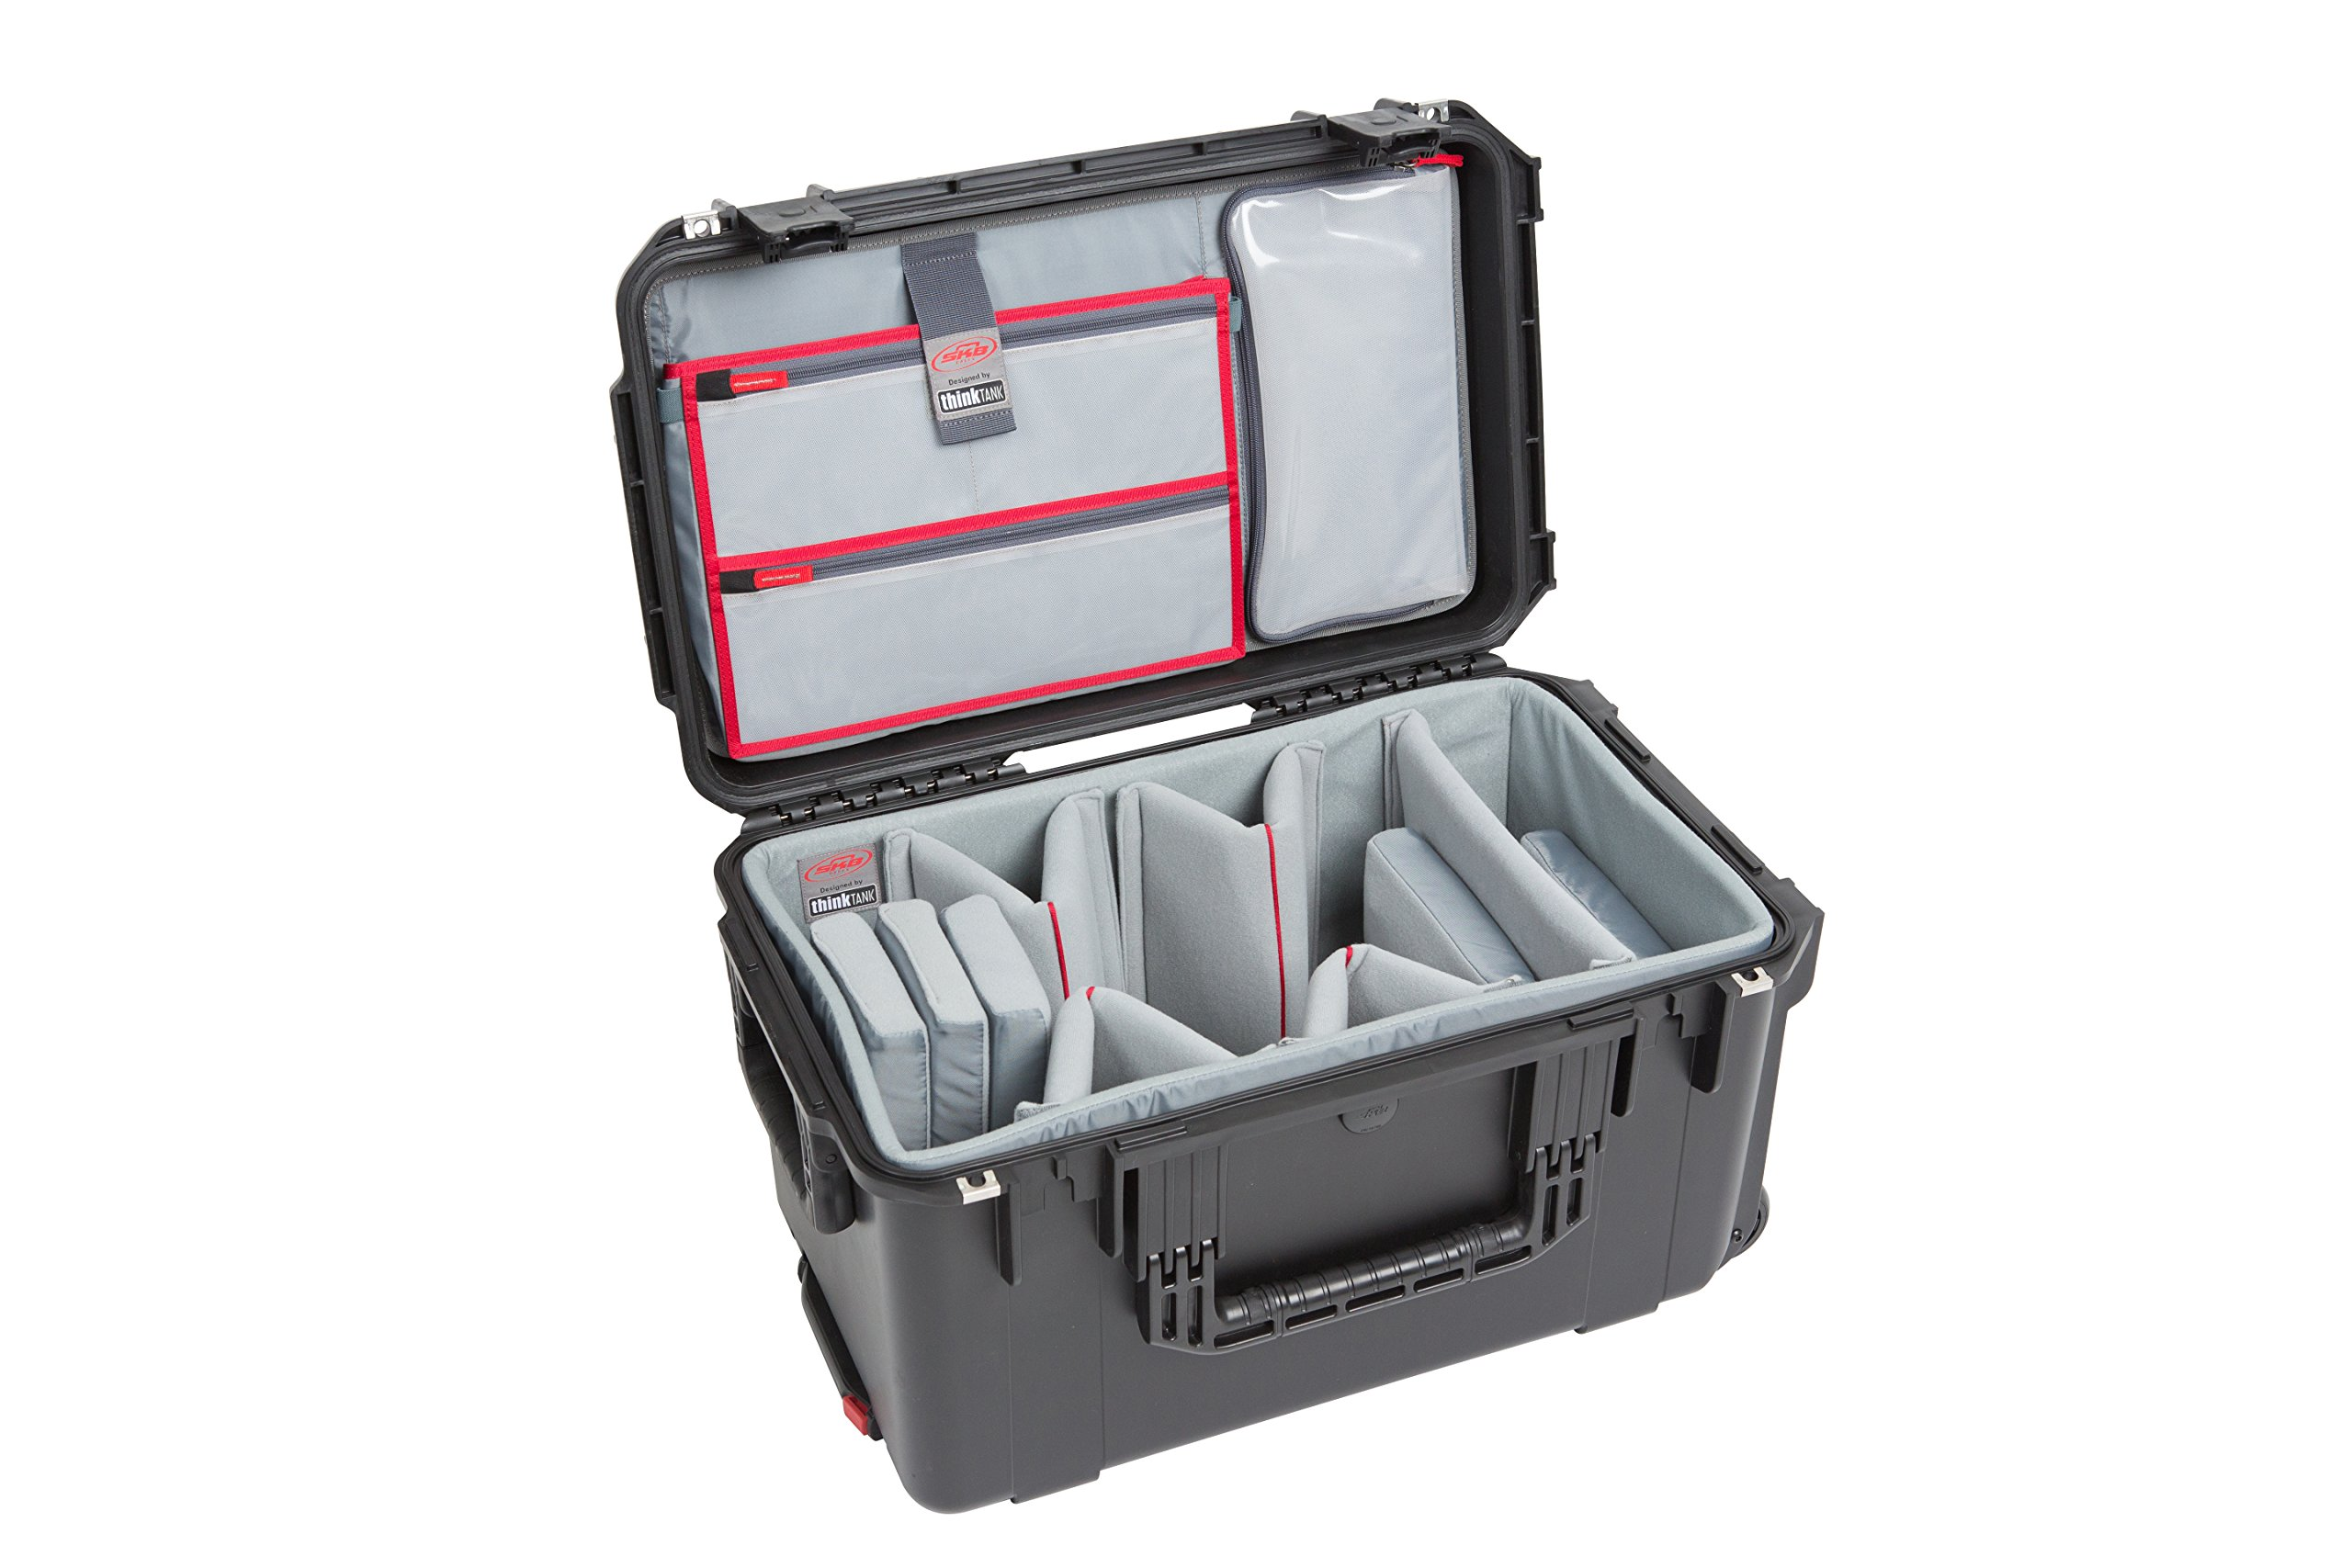 SKB Cases iSeries 3i-2213-12 Case with Think Tank Video Dividers, Black (3i-2213-12DL)